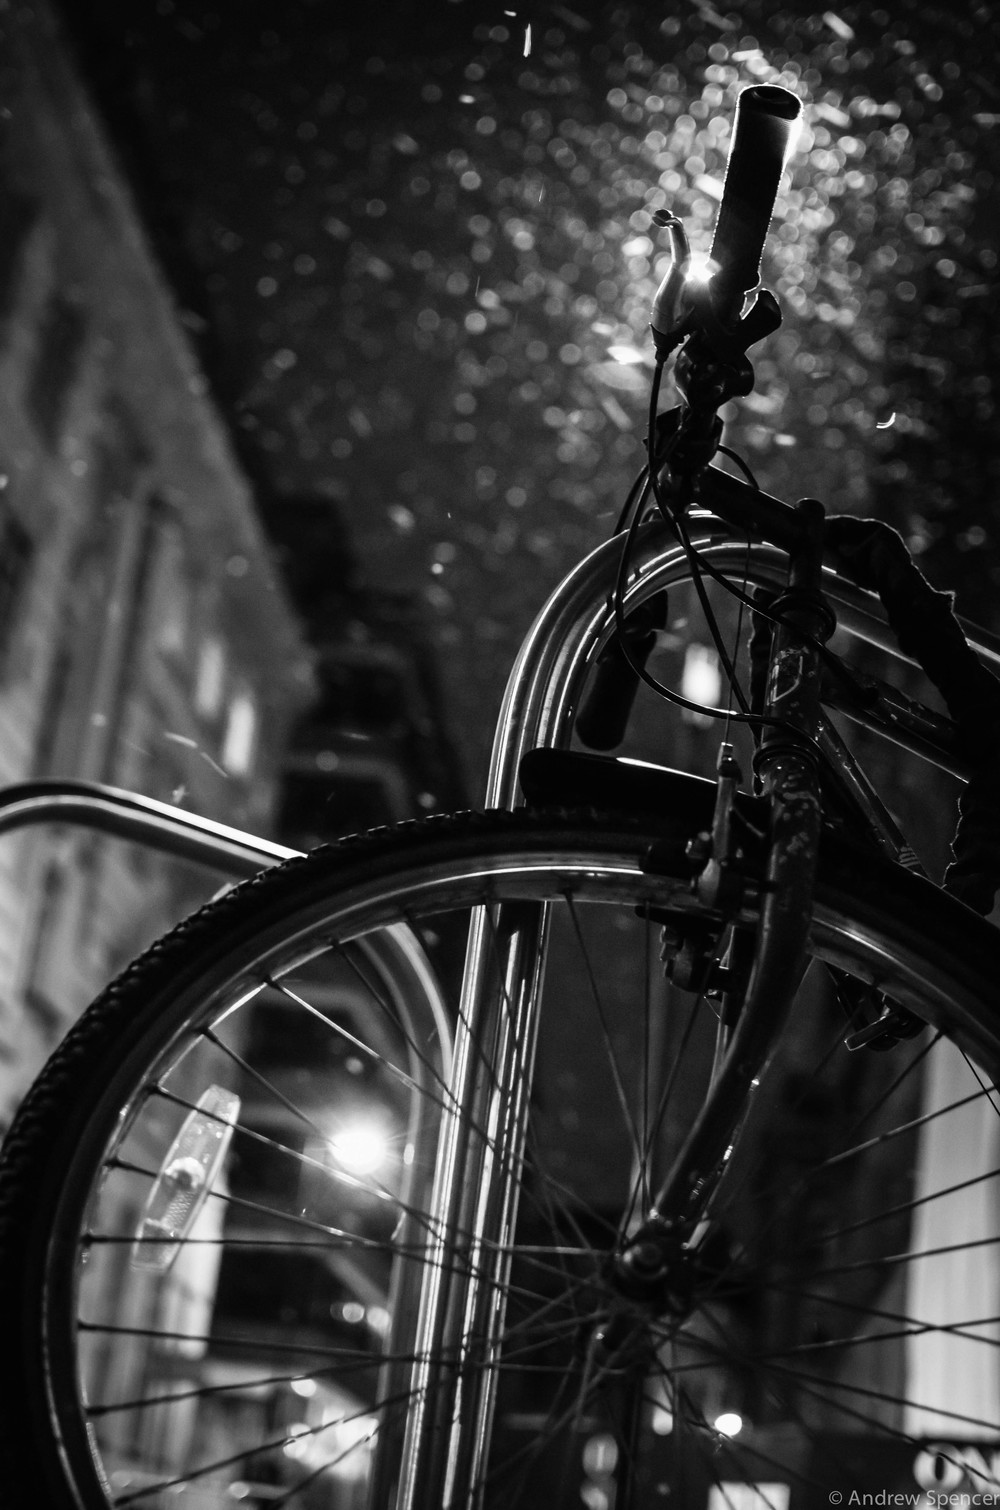 12)   Winter bike:   After a snowy night on the ale in Manchester, I took this. Beer and photography can mix.